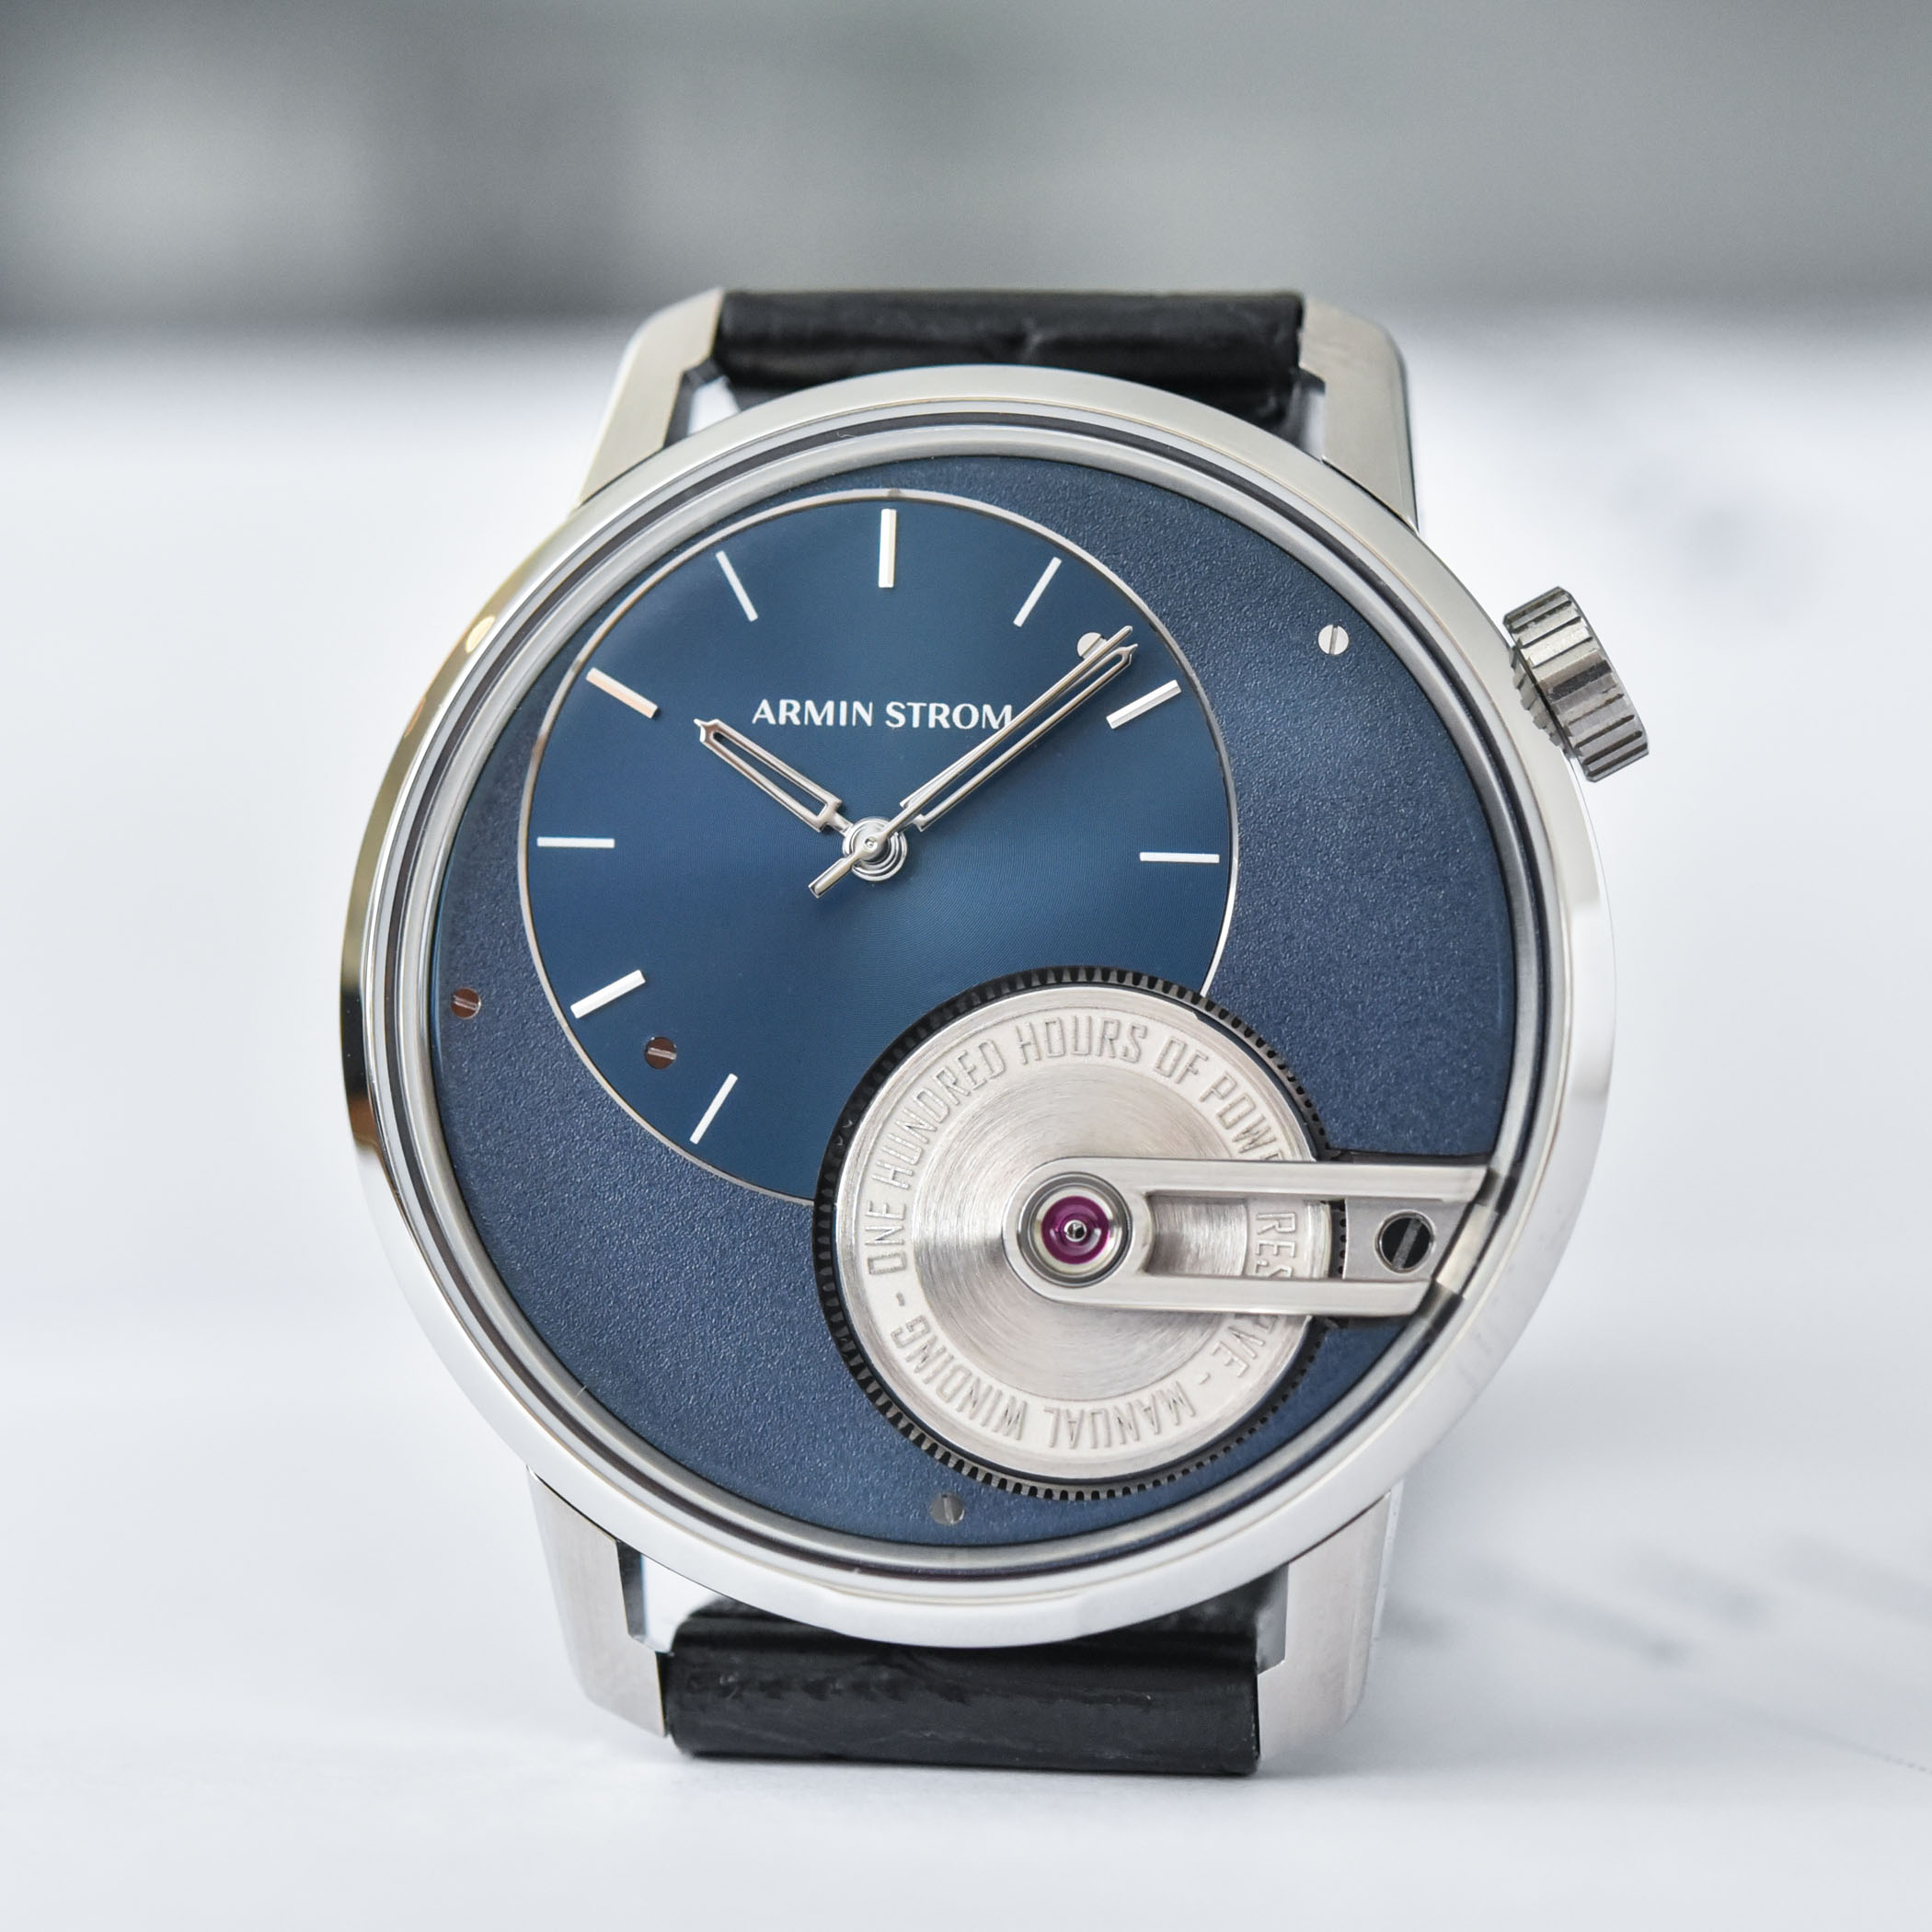 Armin Strom Tribute 1 Limited Edition blue